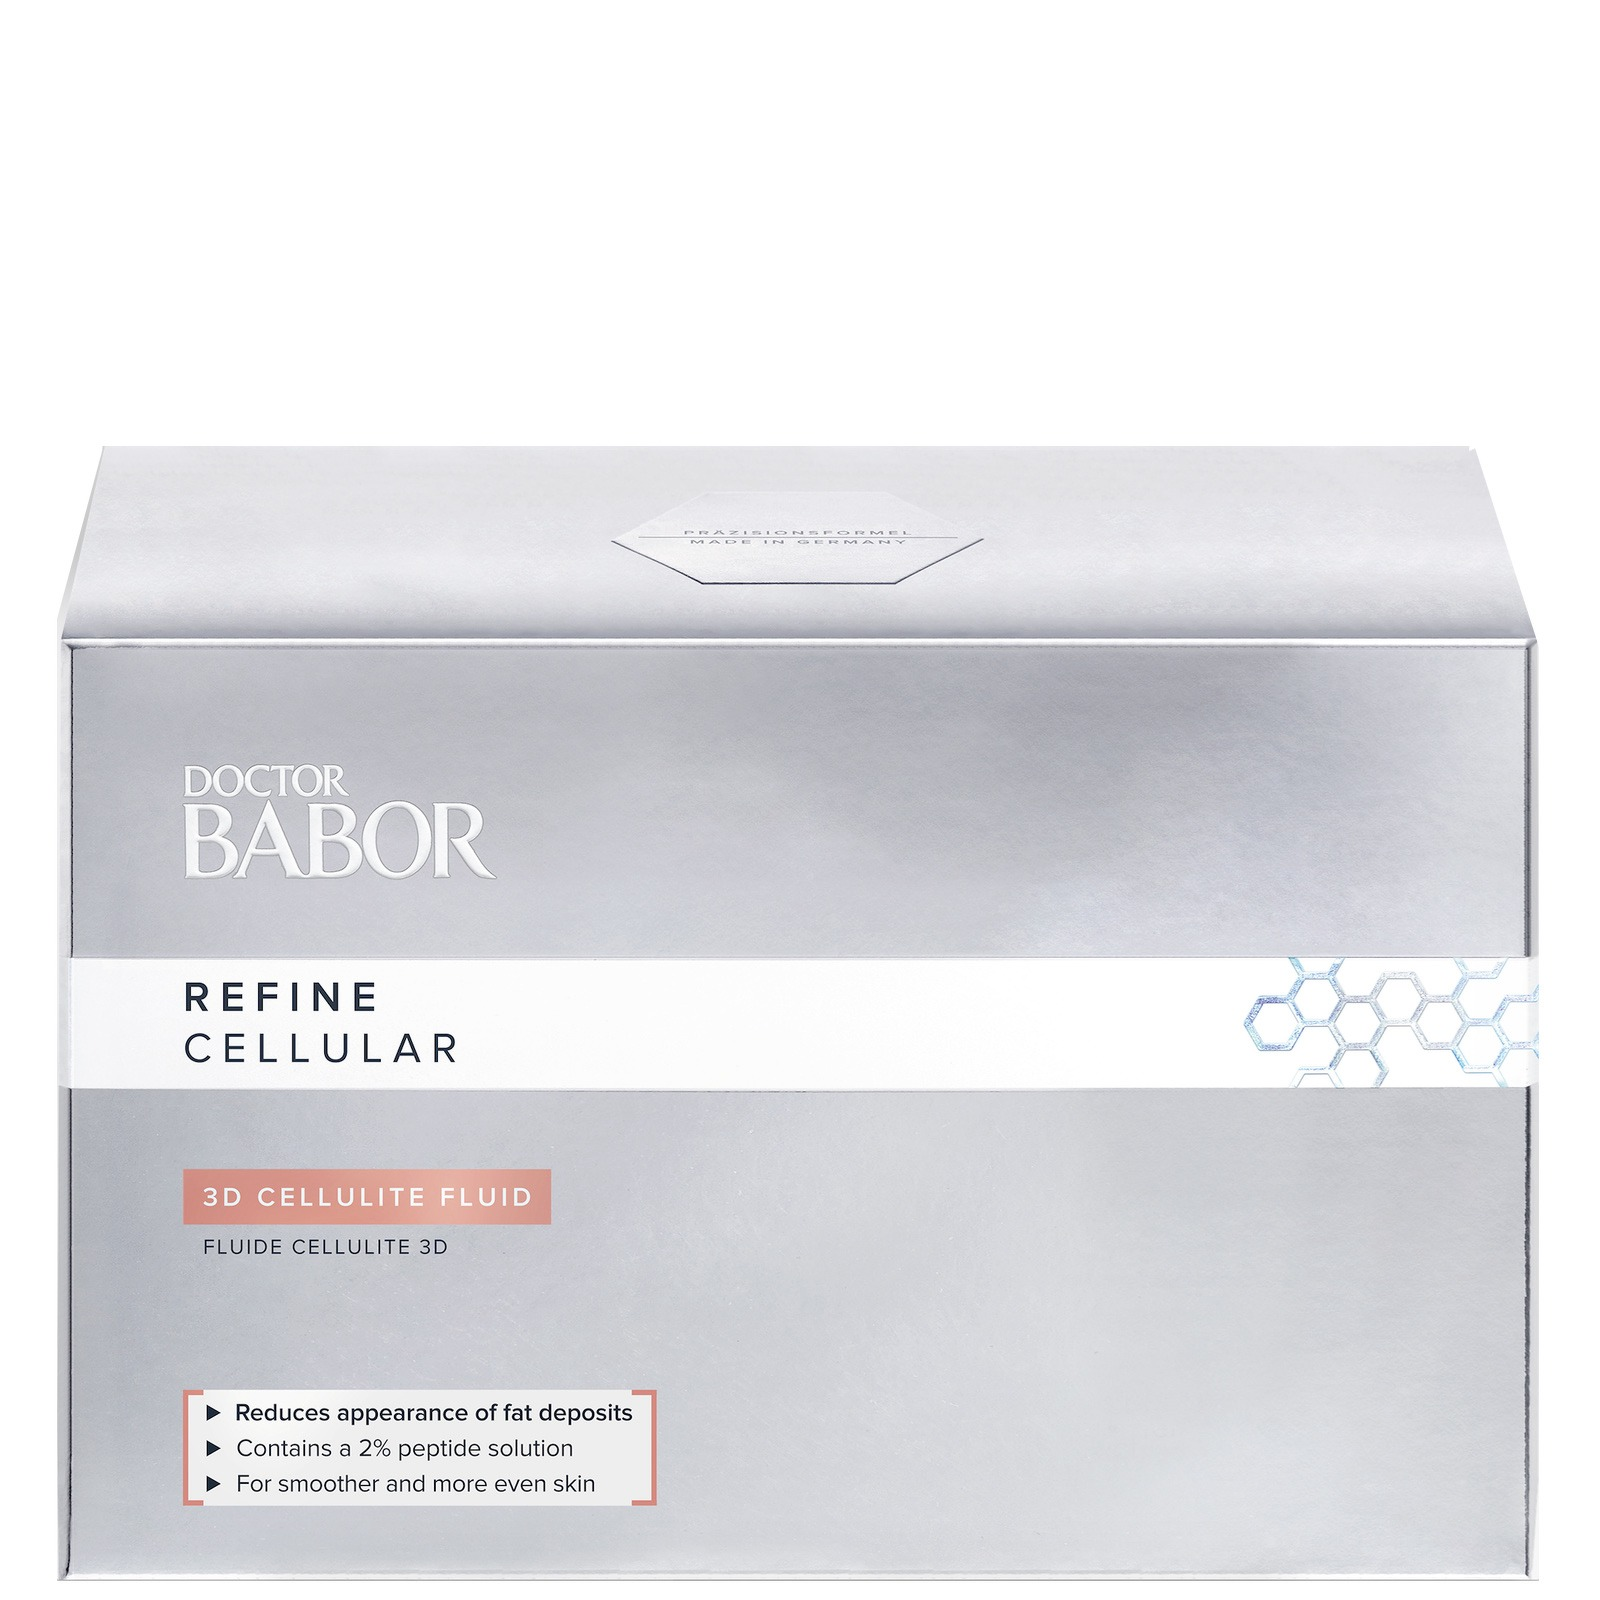 BABOR Doctor Babor Refine Cellular: 3D Cellulite Fluid Ampoules 14 x 10ml